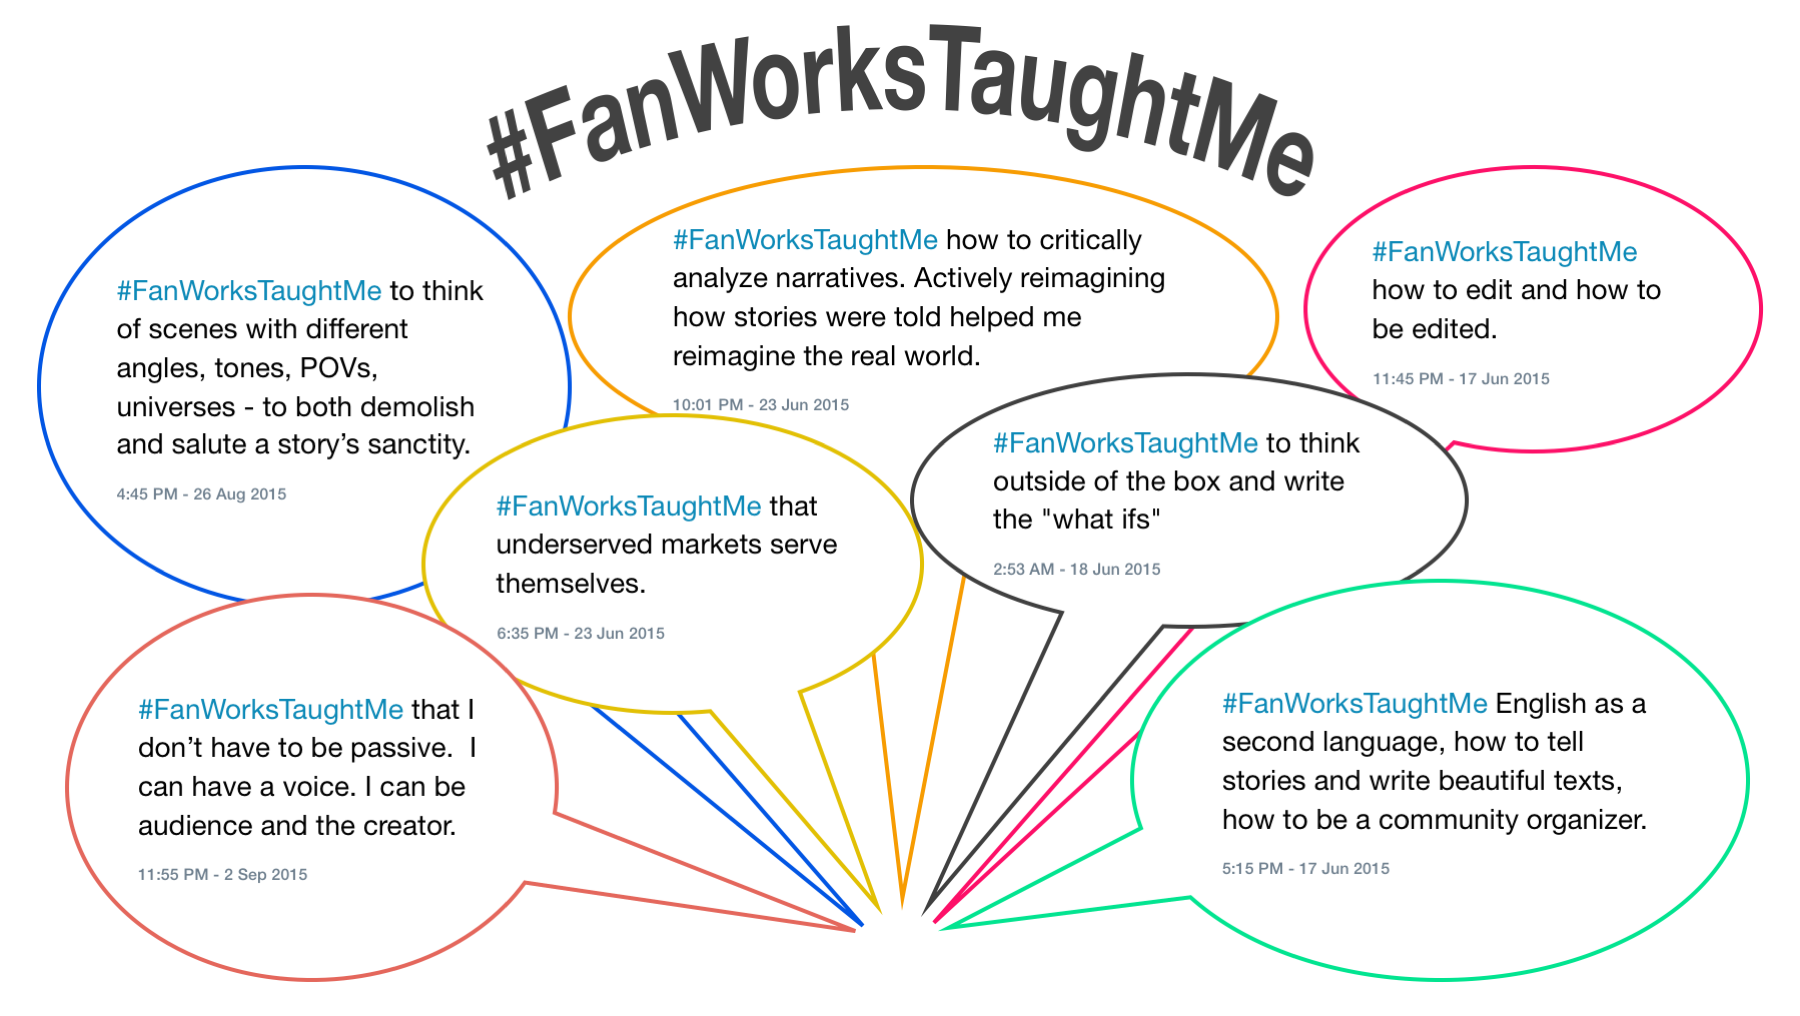 "Voice bubbles with some of the voices on the #FanWorksTaughtMe hashtag. The bubbles read: 1. #FanWorksTaughtMe to think of scenes with different angles, tones, POVs, universes – to both demolish and salute a story's sanctity. 2. #FanWorksTaughtMe that I don't have to be passive. I can have a voice. I can be audience and the creator. 3. #FanWorksTaughtMe how to critically analyze narratives. Actively reimagining how stories were told helped me reimagine the real world. 4. #FanWorksTaughtMe how to edit and how to be edited. 5. #FanWorksTaughtMe that underserves markets serve themselves . 6. #FanWorksTaughtMe to think outside the box and to write the ""what ifs."" 7. #FanWorksTaughtMe English as a second language, how to tell stories and write beautiful texts, how to be a community organizer."